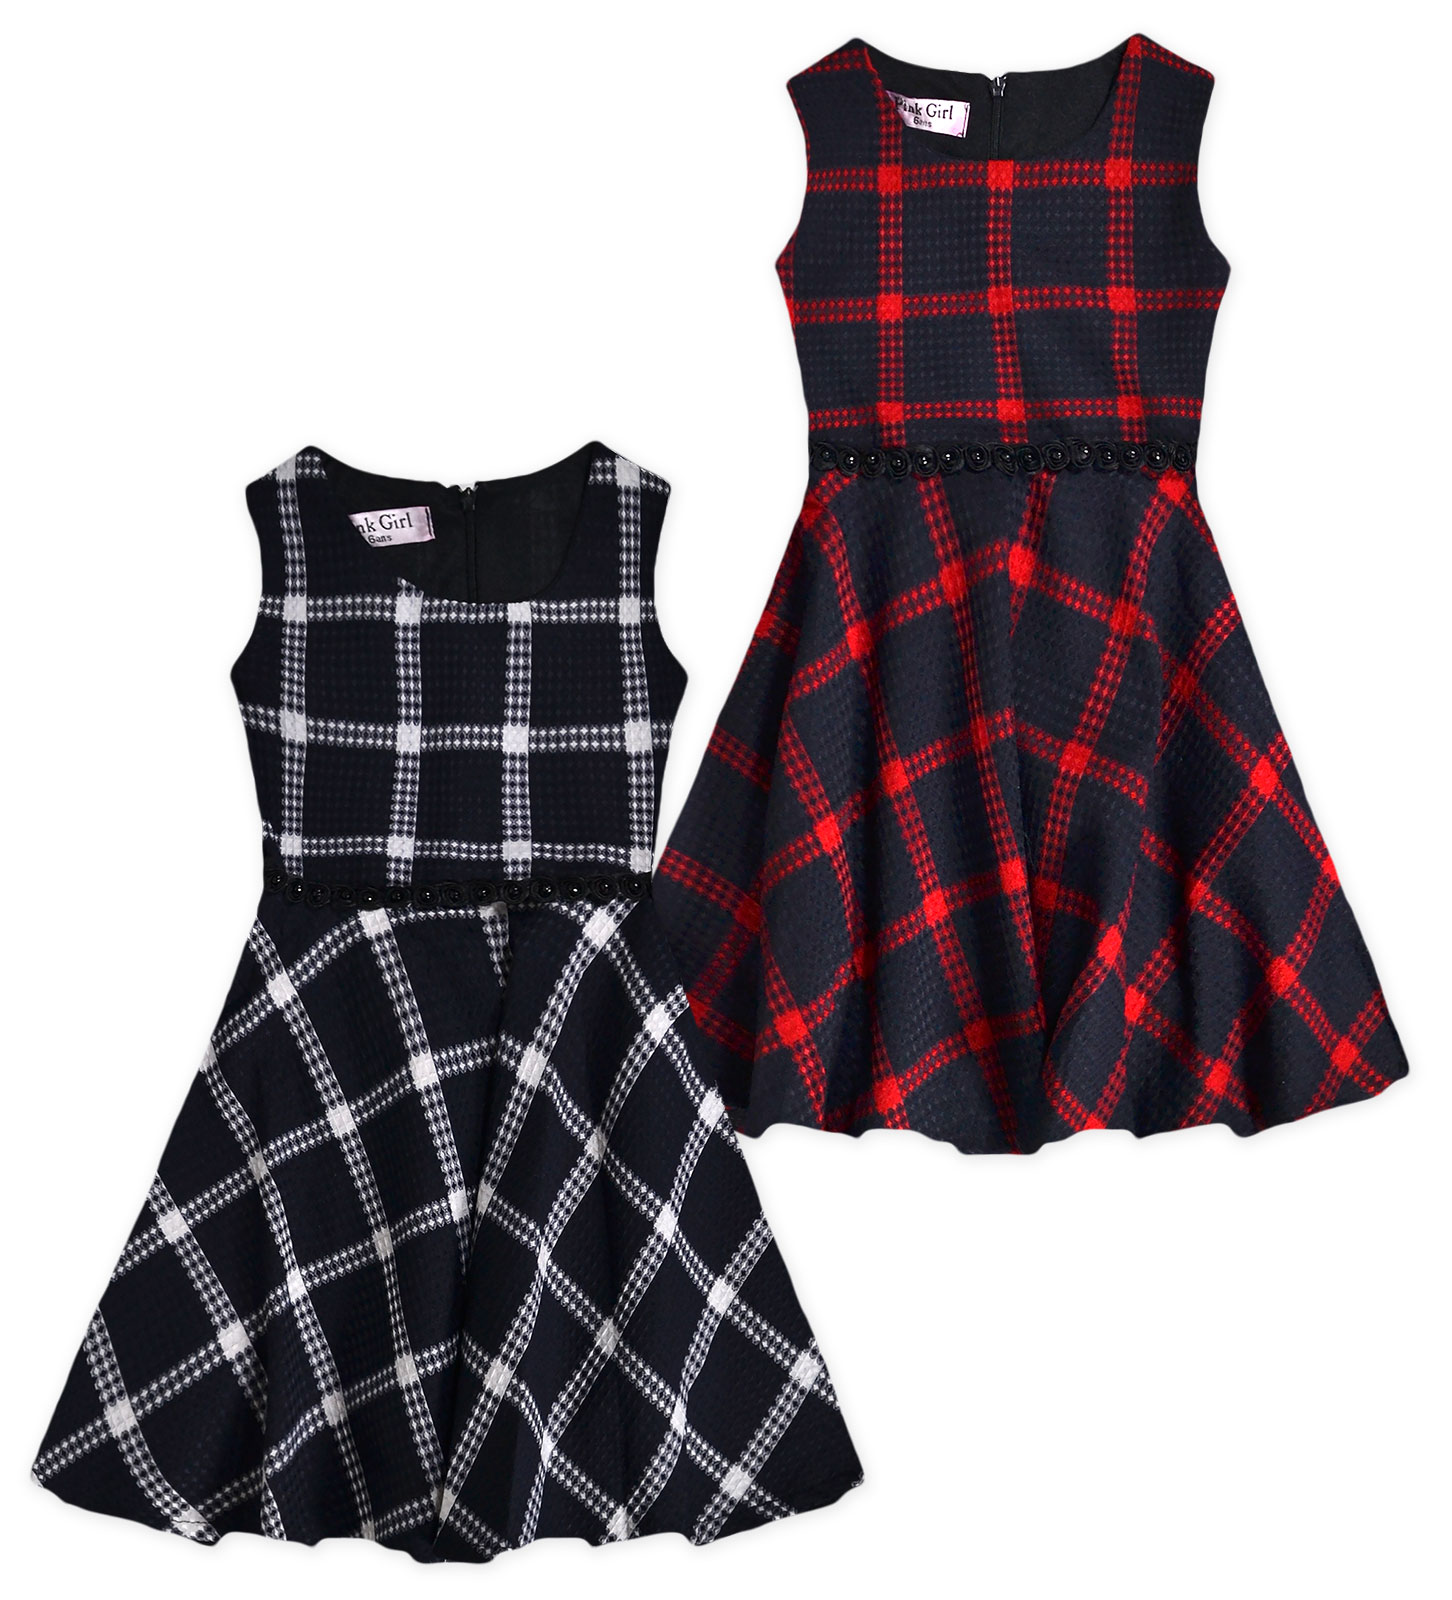 Girls Sleeveless Winter Check Skater Dress New Kids Party Dresses Ages 3-12  Yrs 613c5cf95